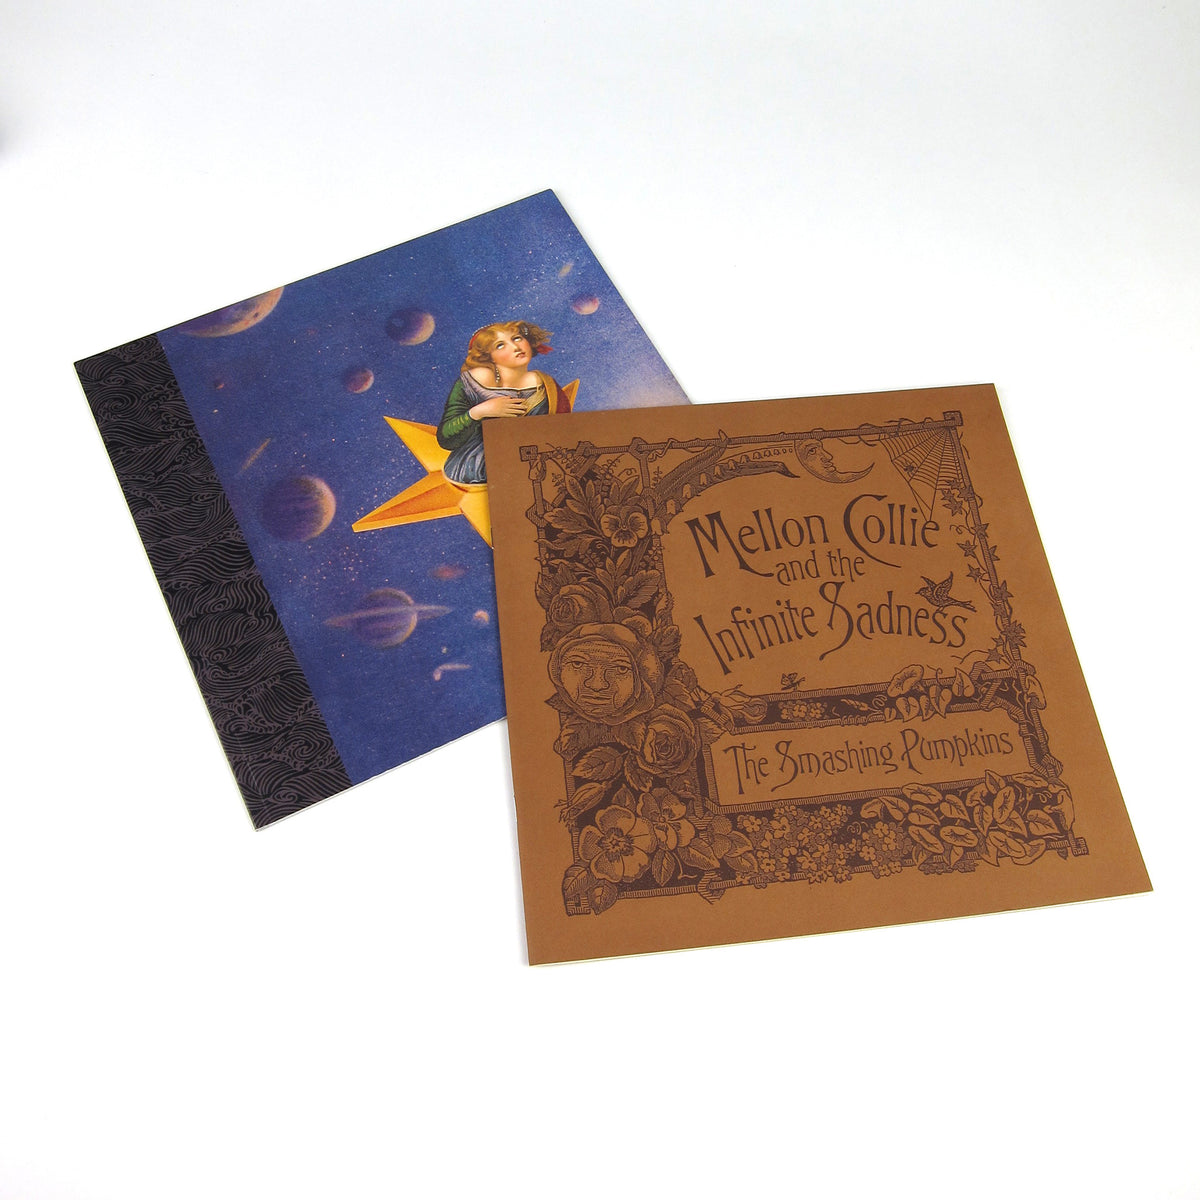 Smashing Pumpkins: Mellon Collie And The Infinite Sadness Vinyl 4LP Boxset